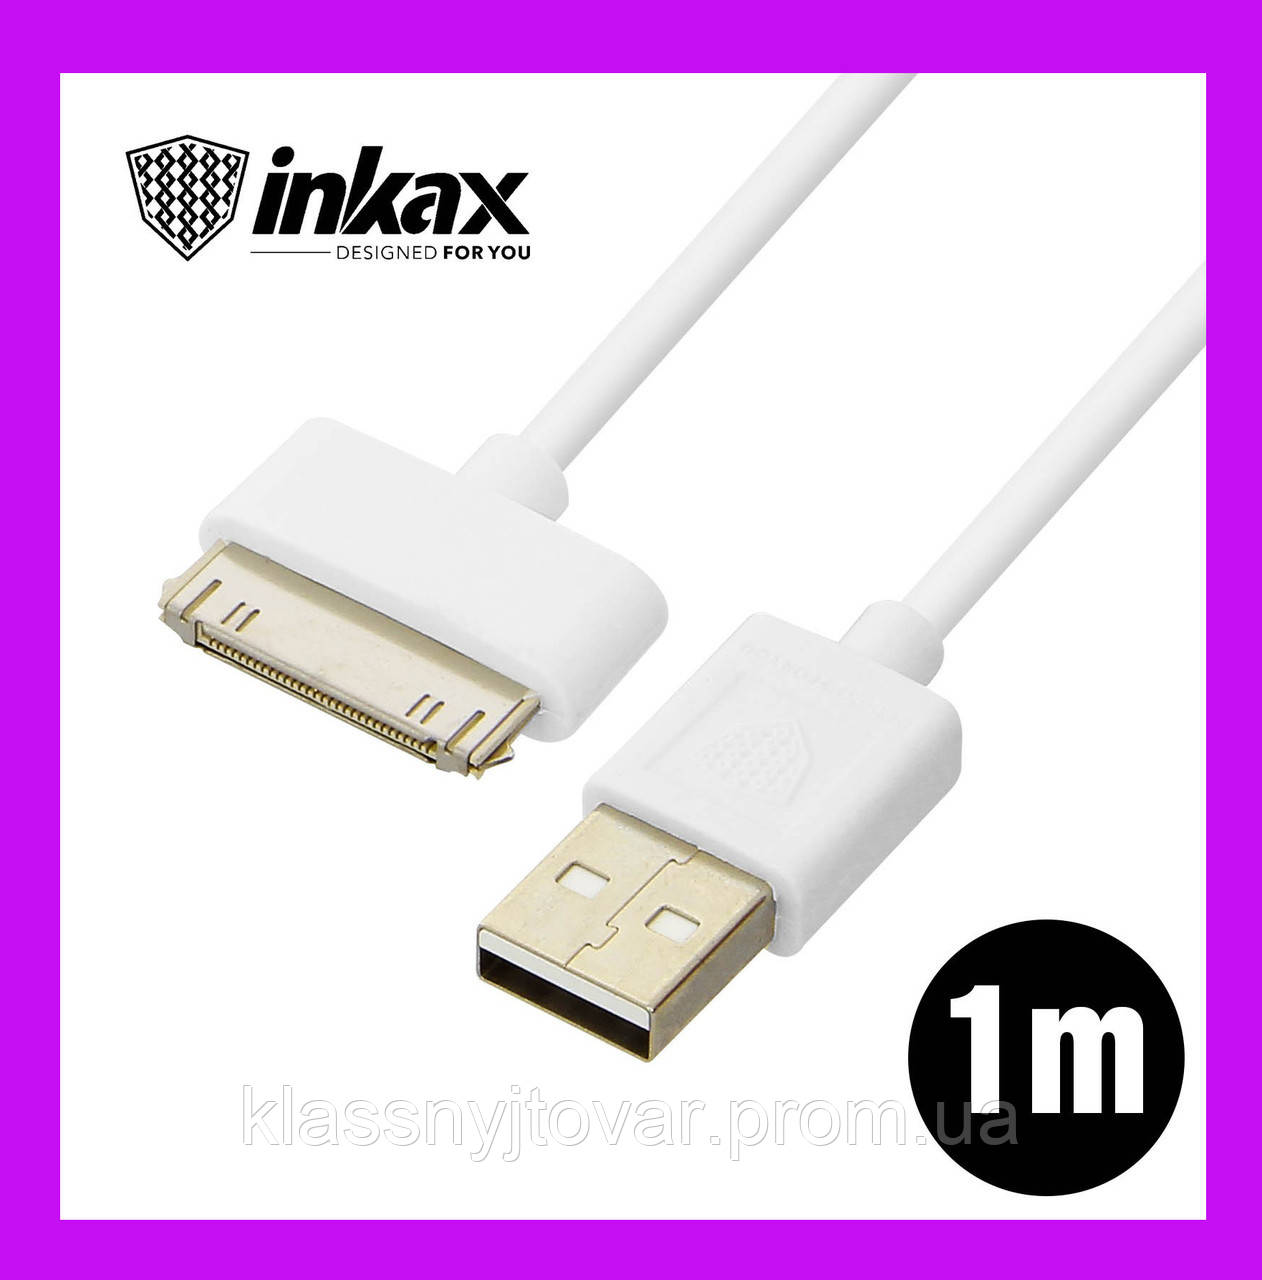 Кабель USB Inkax CK-01 Iphone 4/4S 2.1mAh 1м!Акция